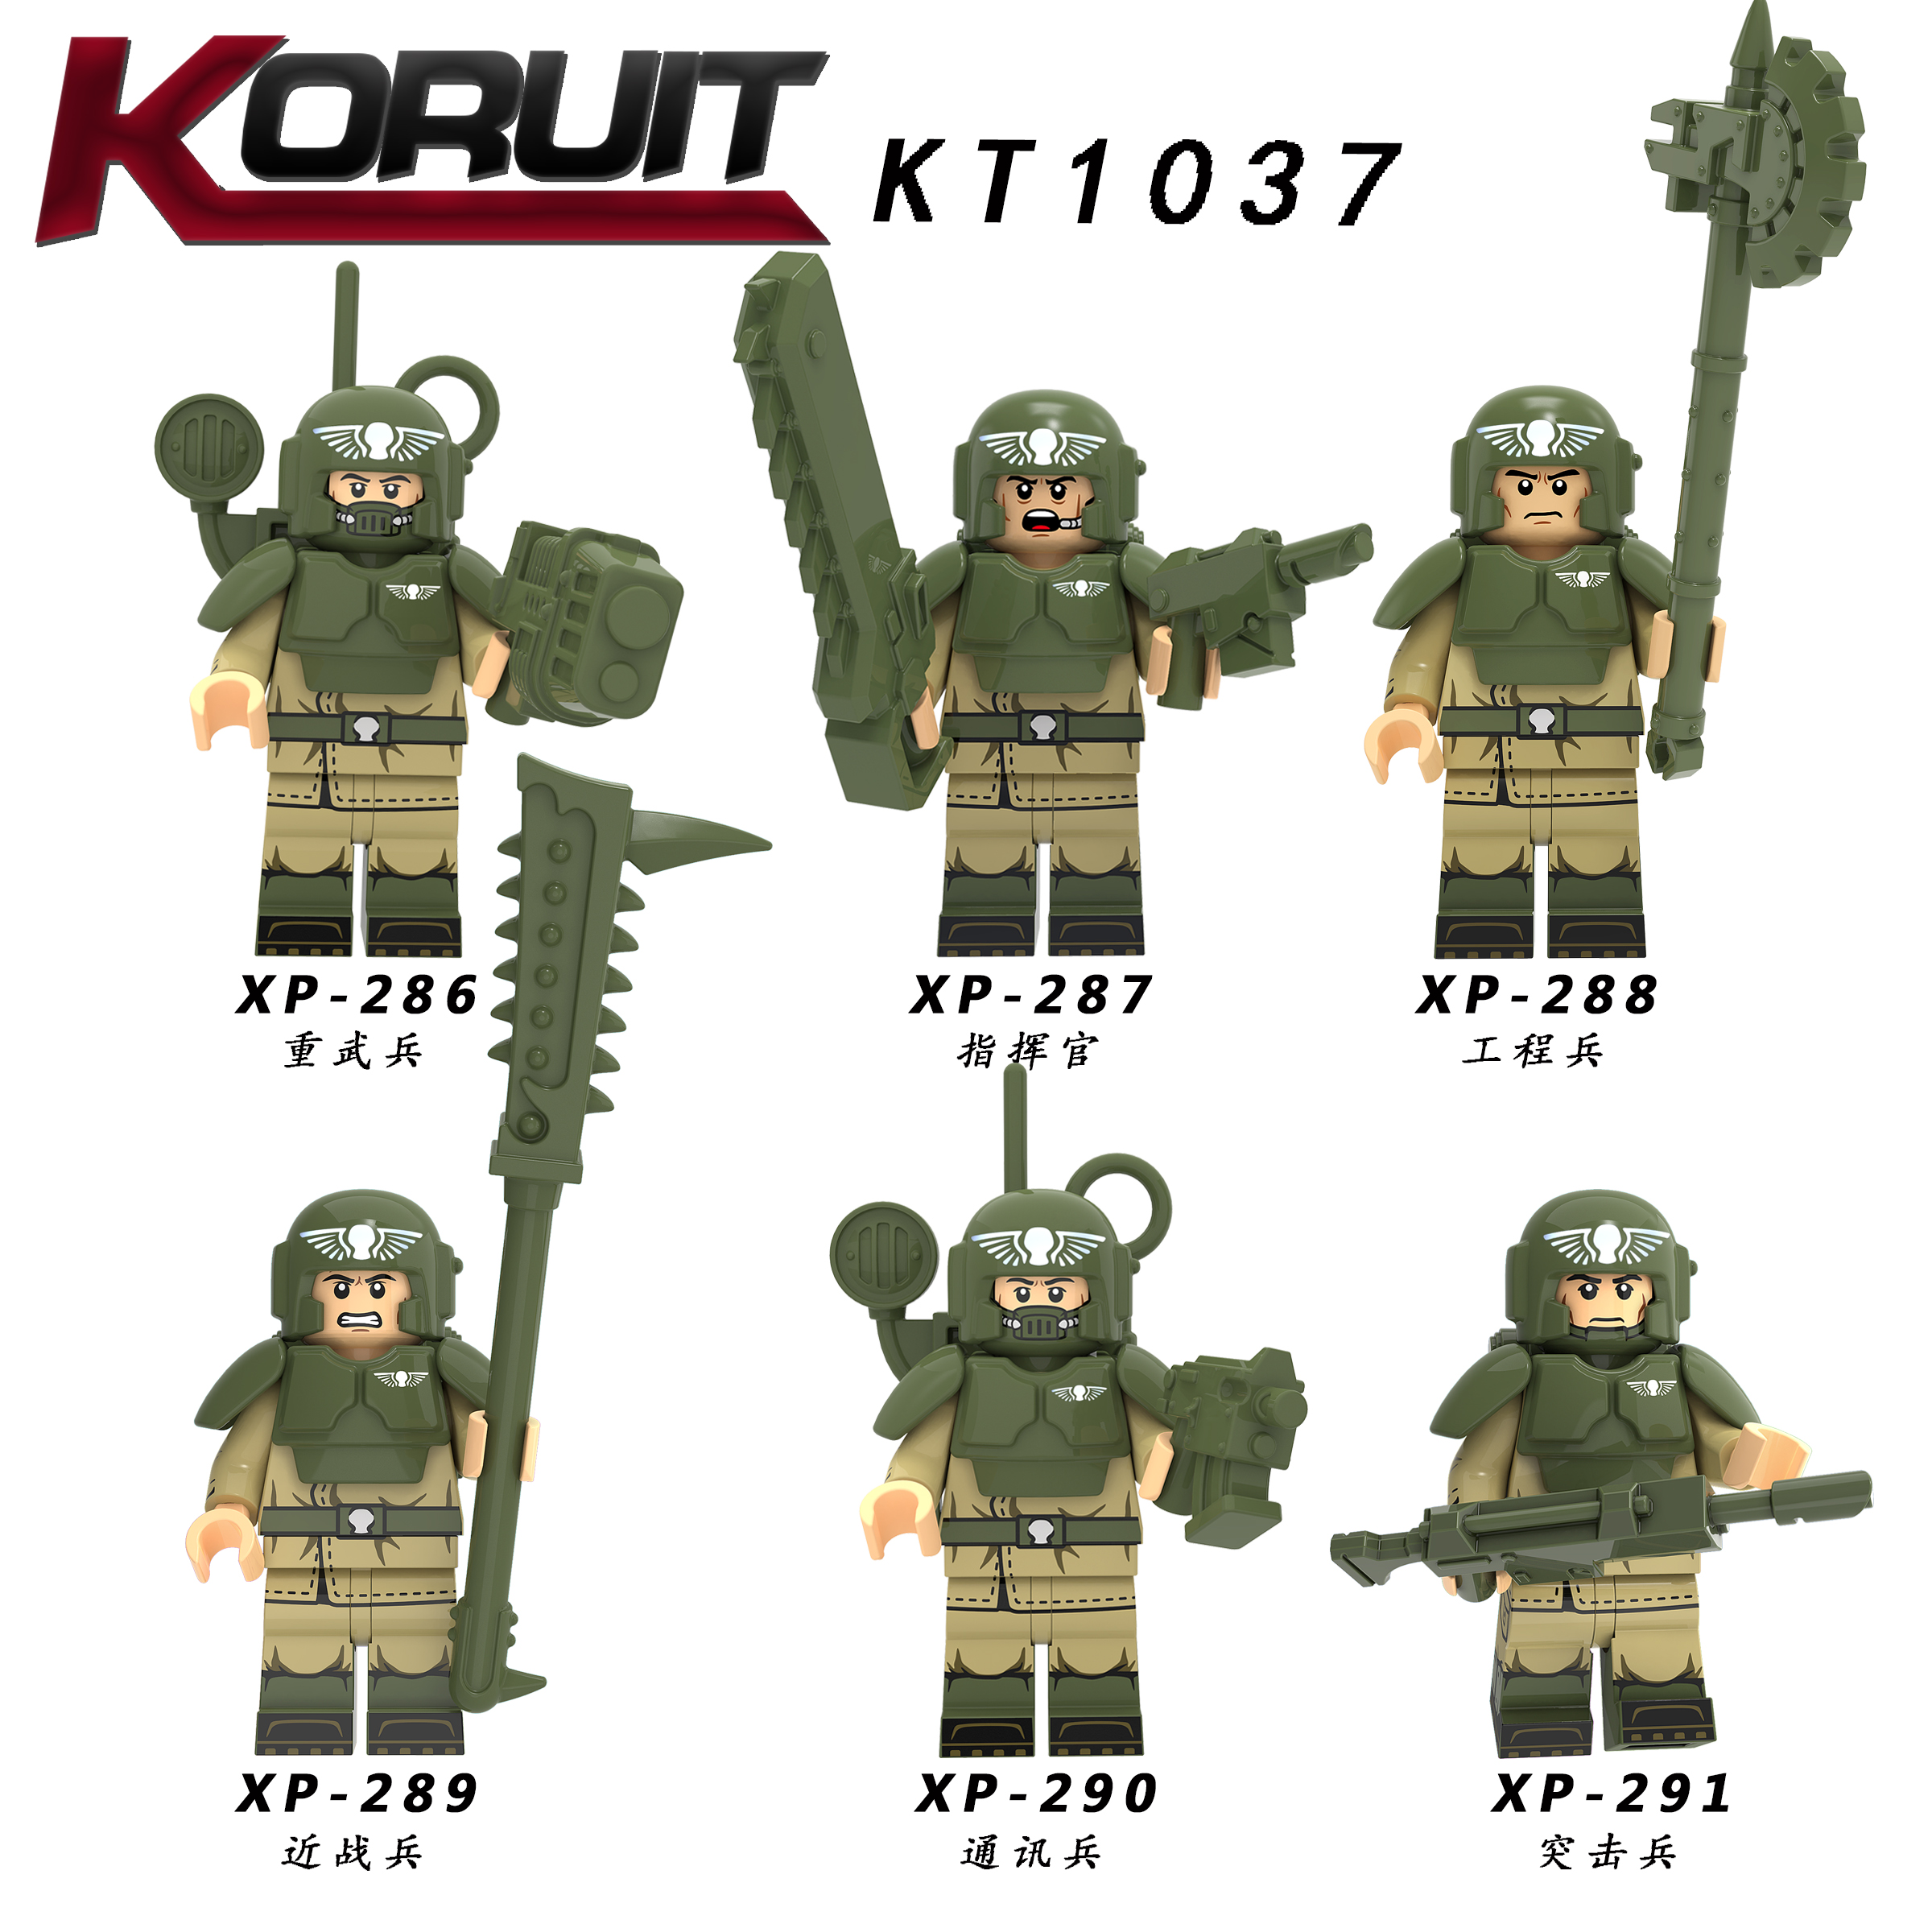 Single Sell  Legoing  Military  Army City Police With Gun  Mini Dolls MOC Building Blocks Brick Toys  For Kids KT1037